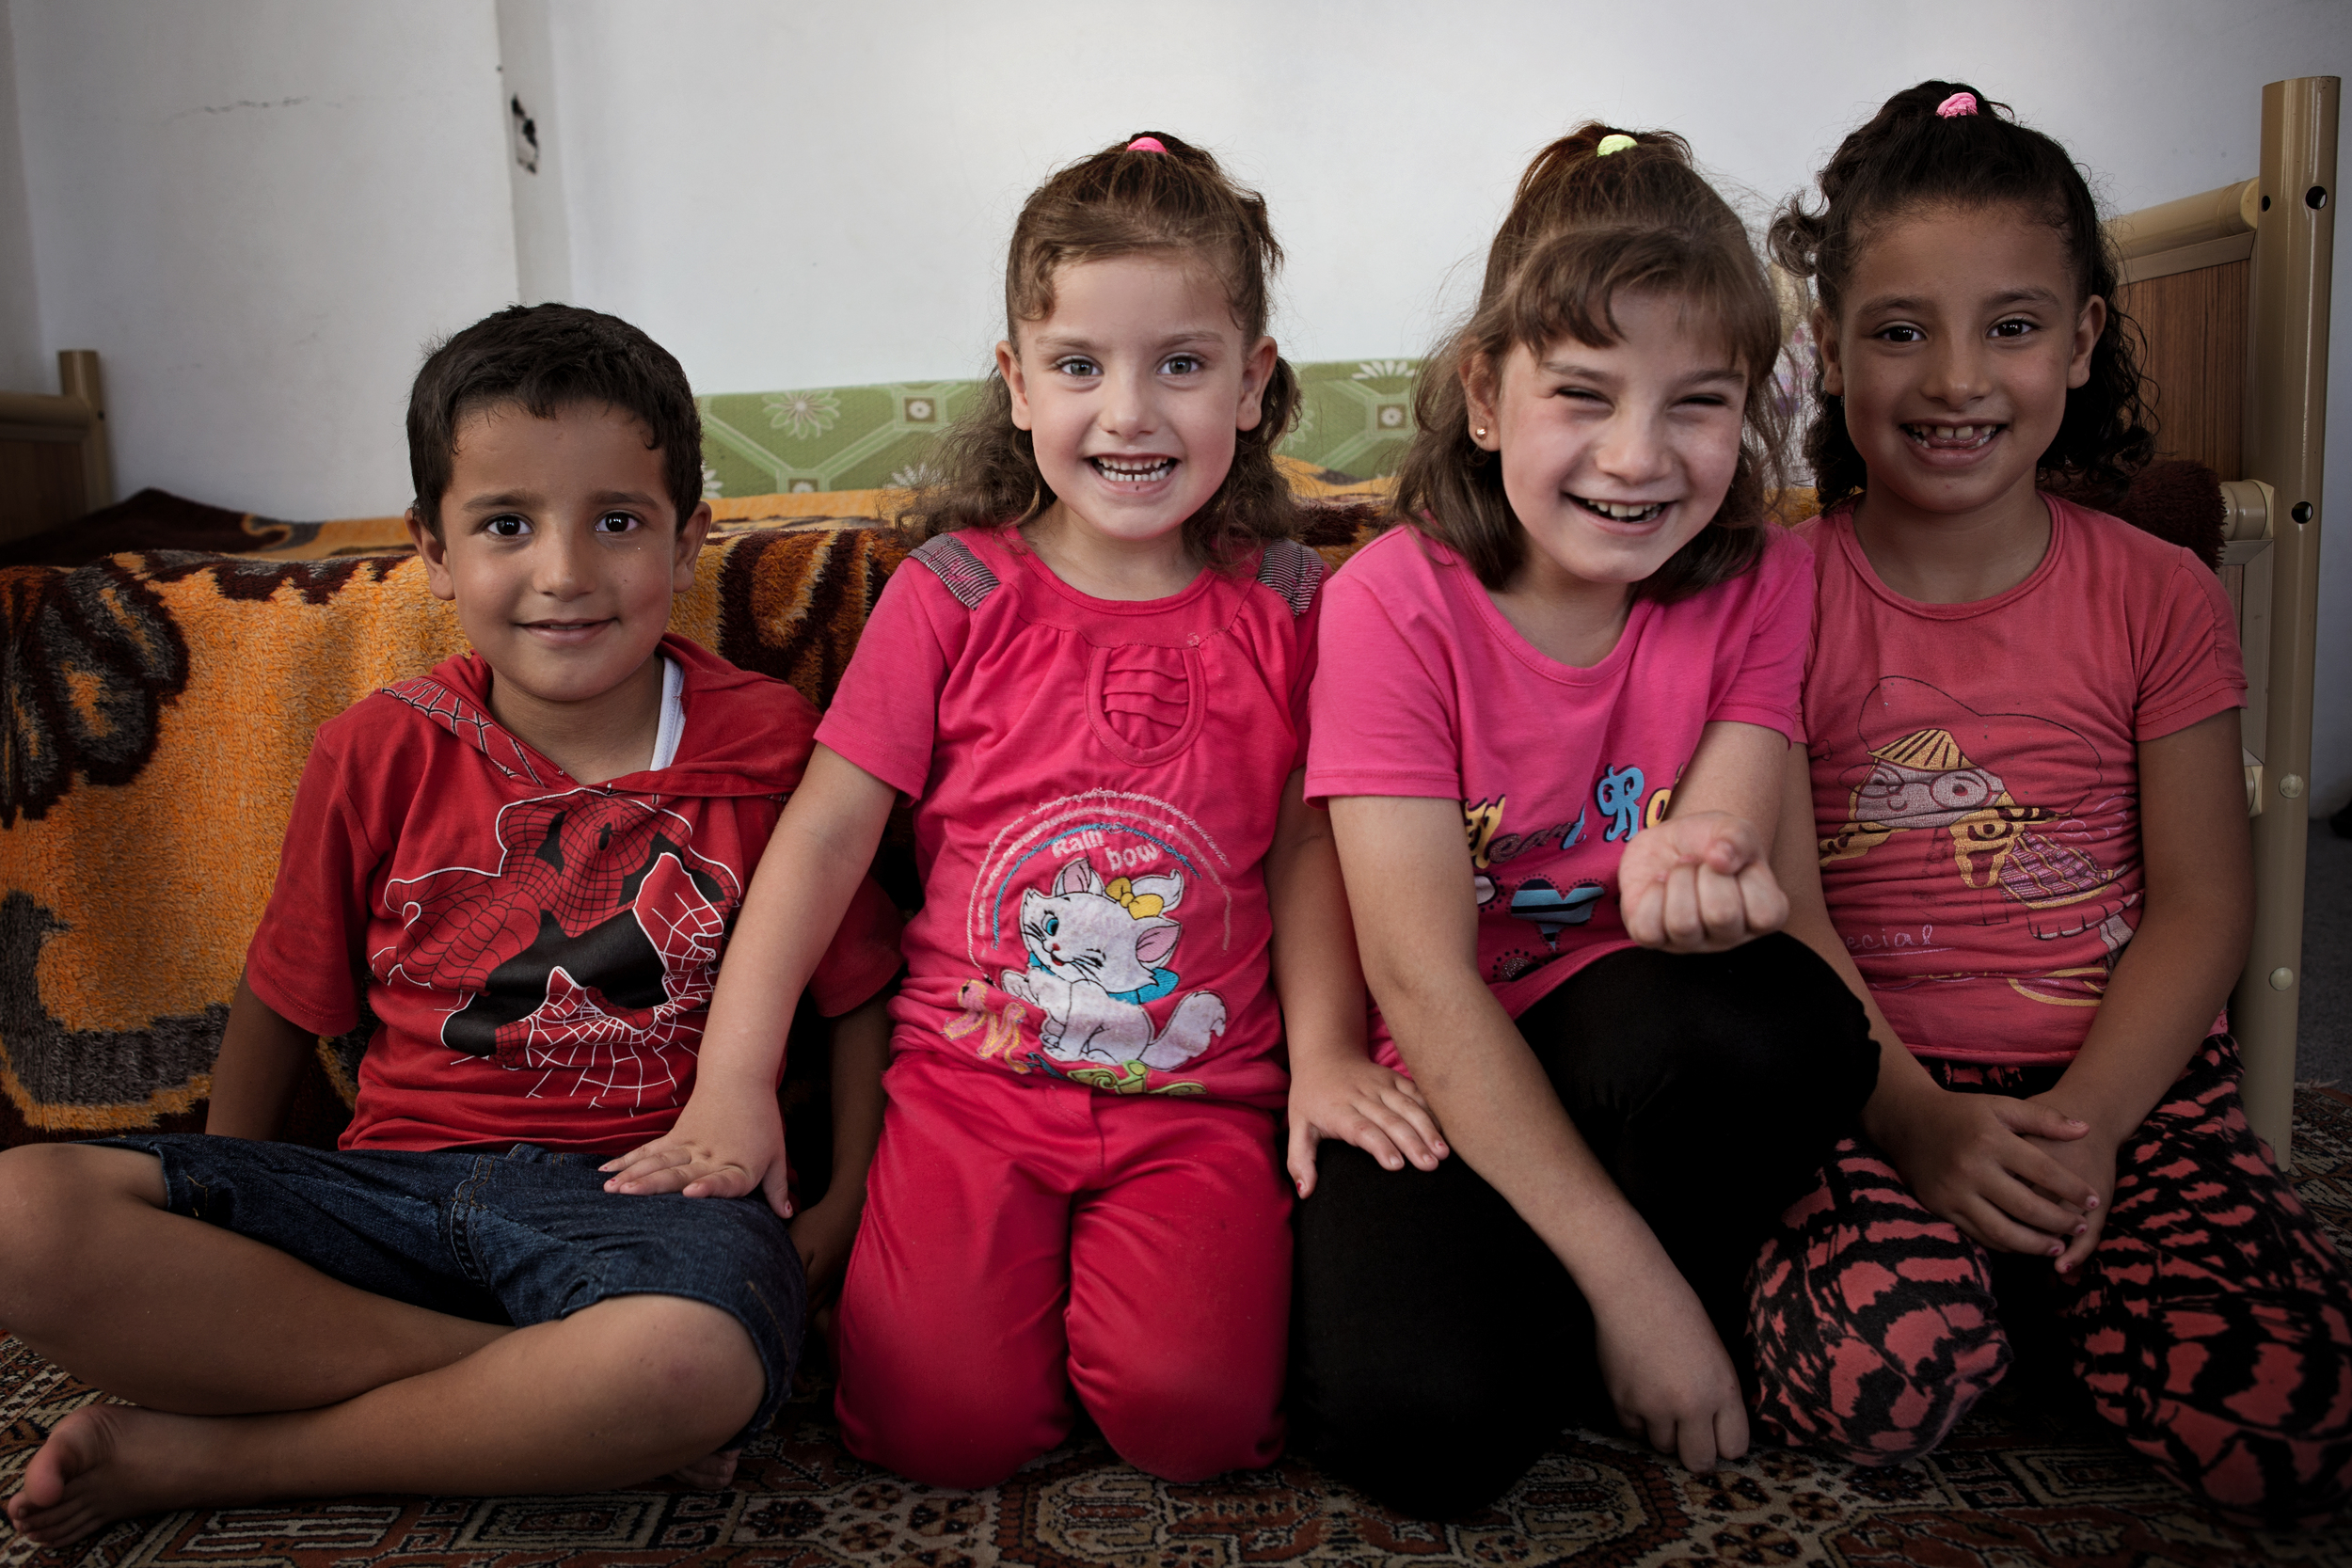 Mahmoud, Duaa, Aisha, & Esraa   Our family is originally from Homs, Syria. We fled to Reyhanli in 2014. We lived with our mother, grandmother, uncle, and his wife and kids in one small apartment. We have not heard from our father since he was arrested in Syria in 2012. Before joining Karam's SSRF program in 2015, none of us were in school, we had missed 2 years of schooling due to the war. Today, Aisha, Mahmoud, Duaa, Aisha, and Esraa are all enrolled in school. We are learning Turkish. Aisha has dreams of being a doctor one day.